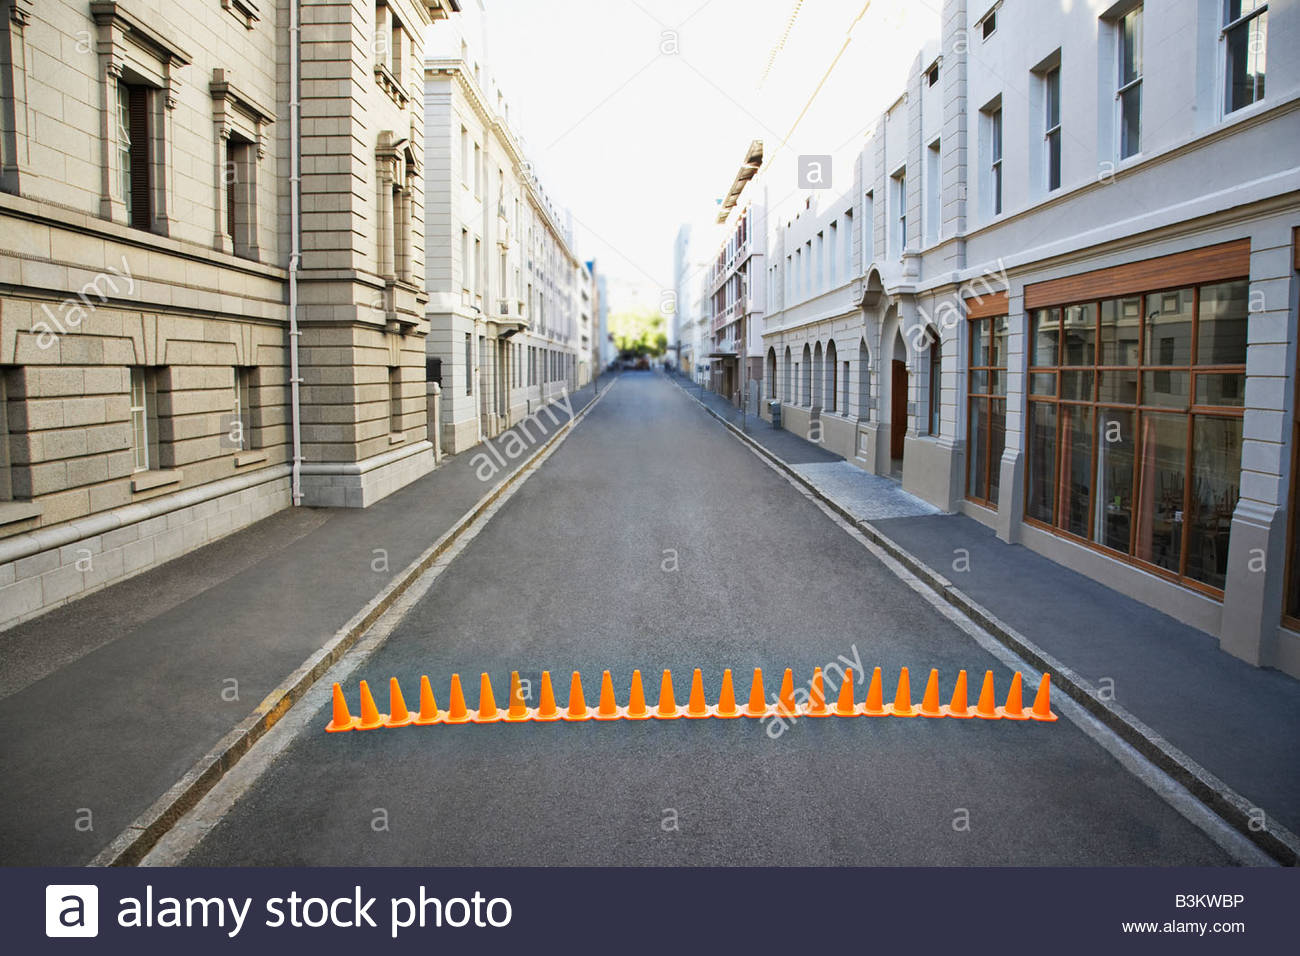 Line of traffic cones in urban roadway - Stock Image